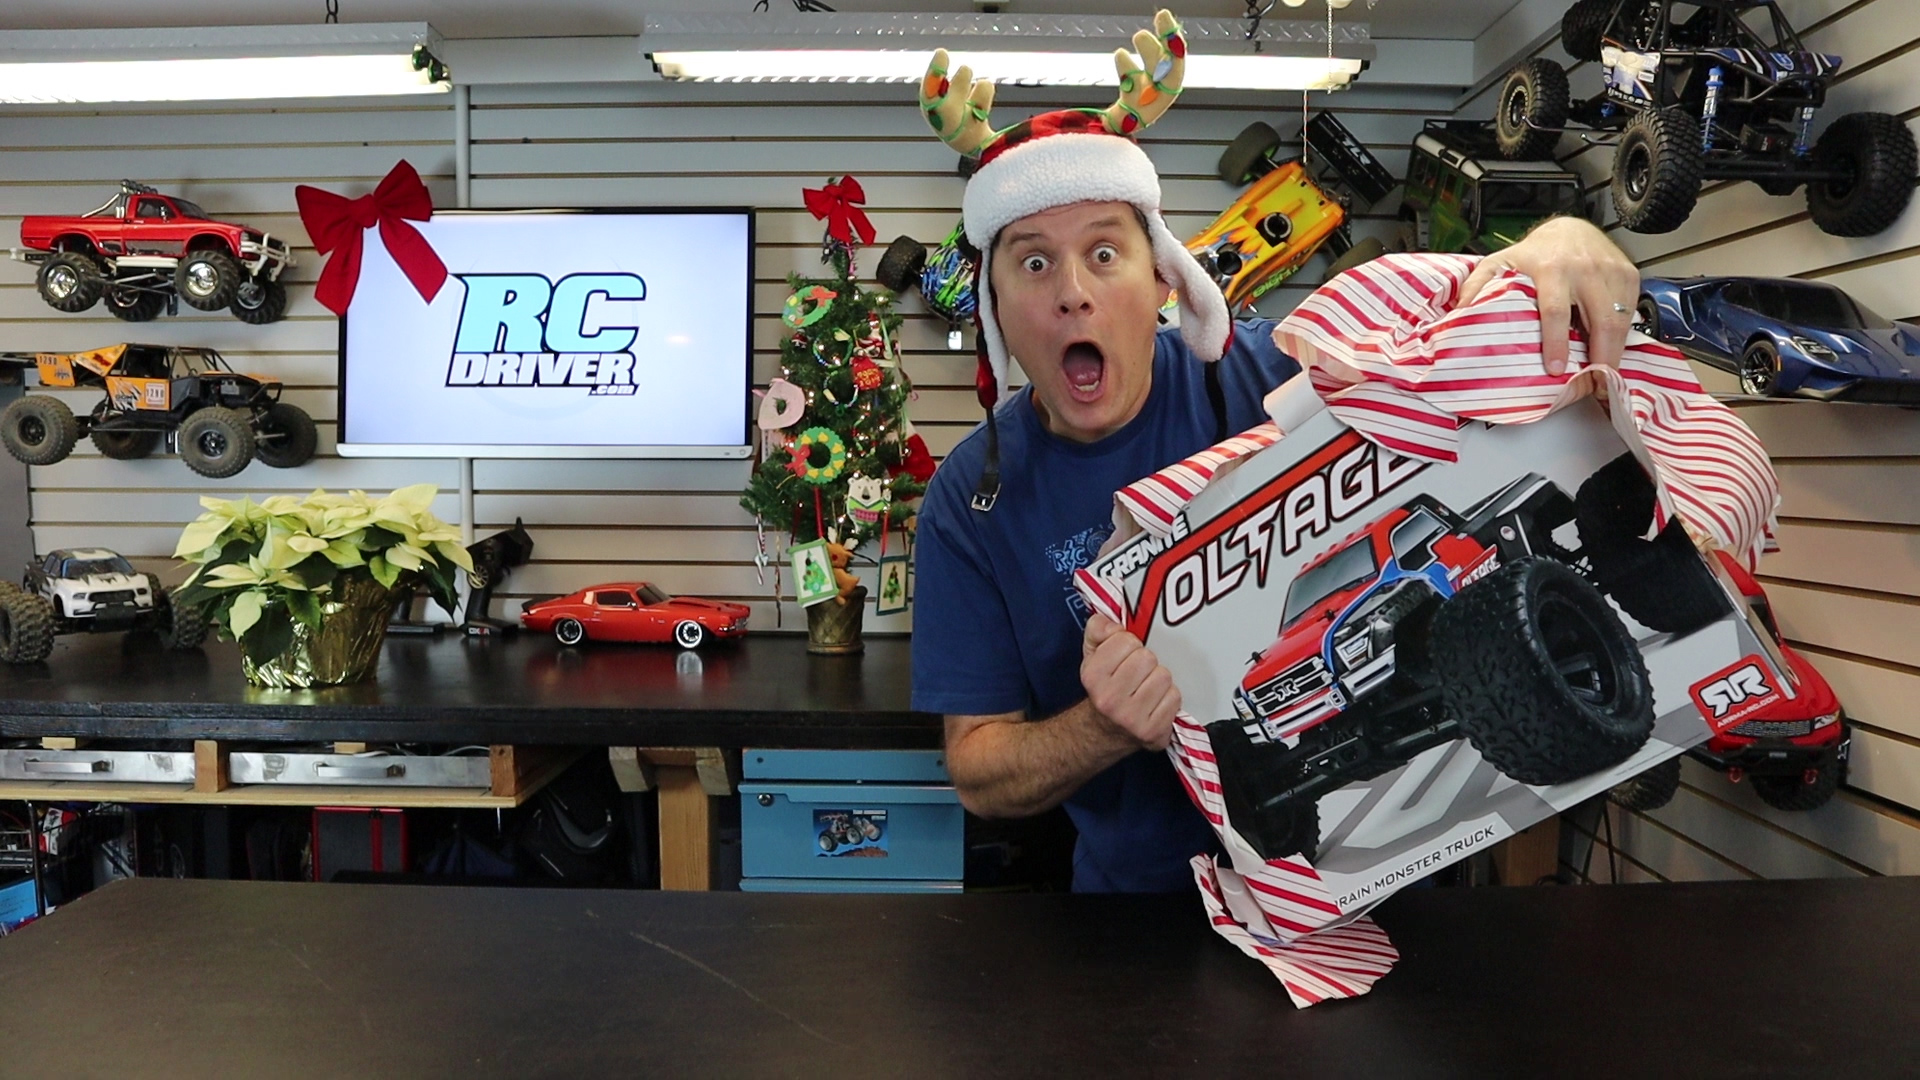 Top 5 RC Truck Gifts Under $200